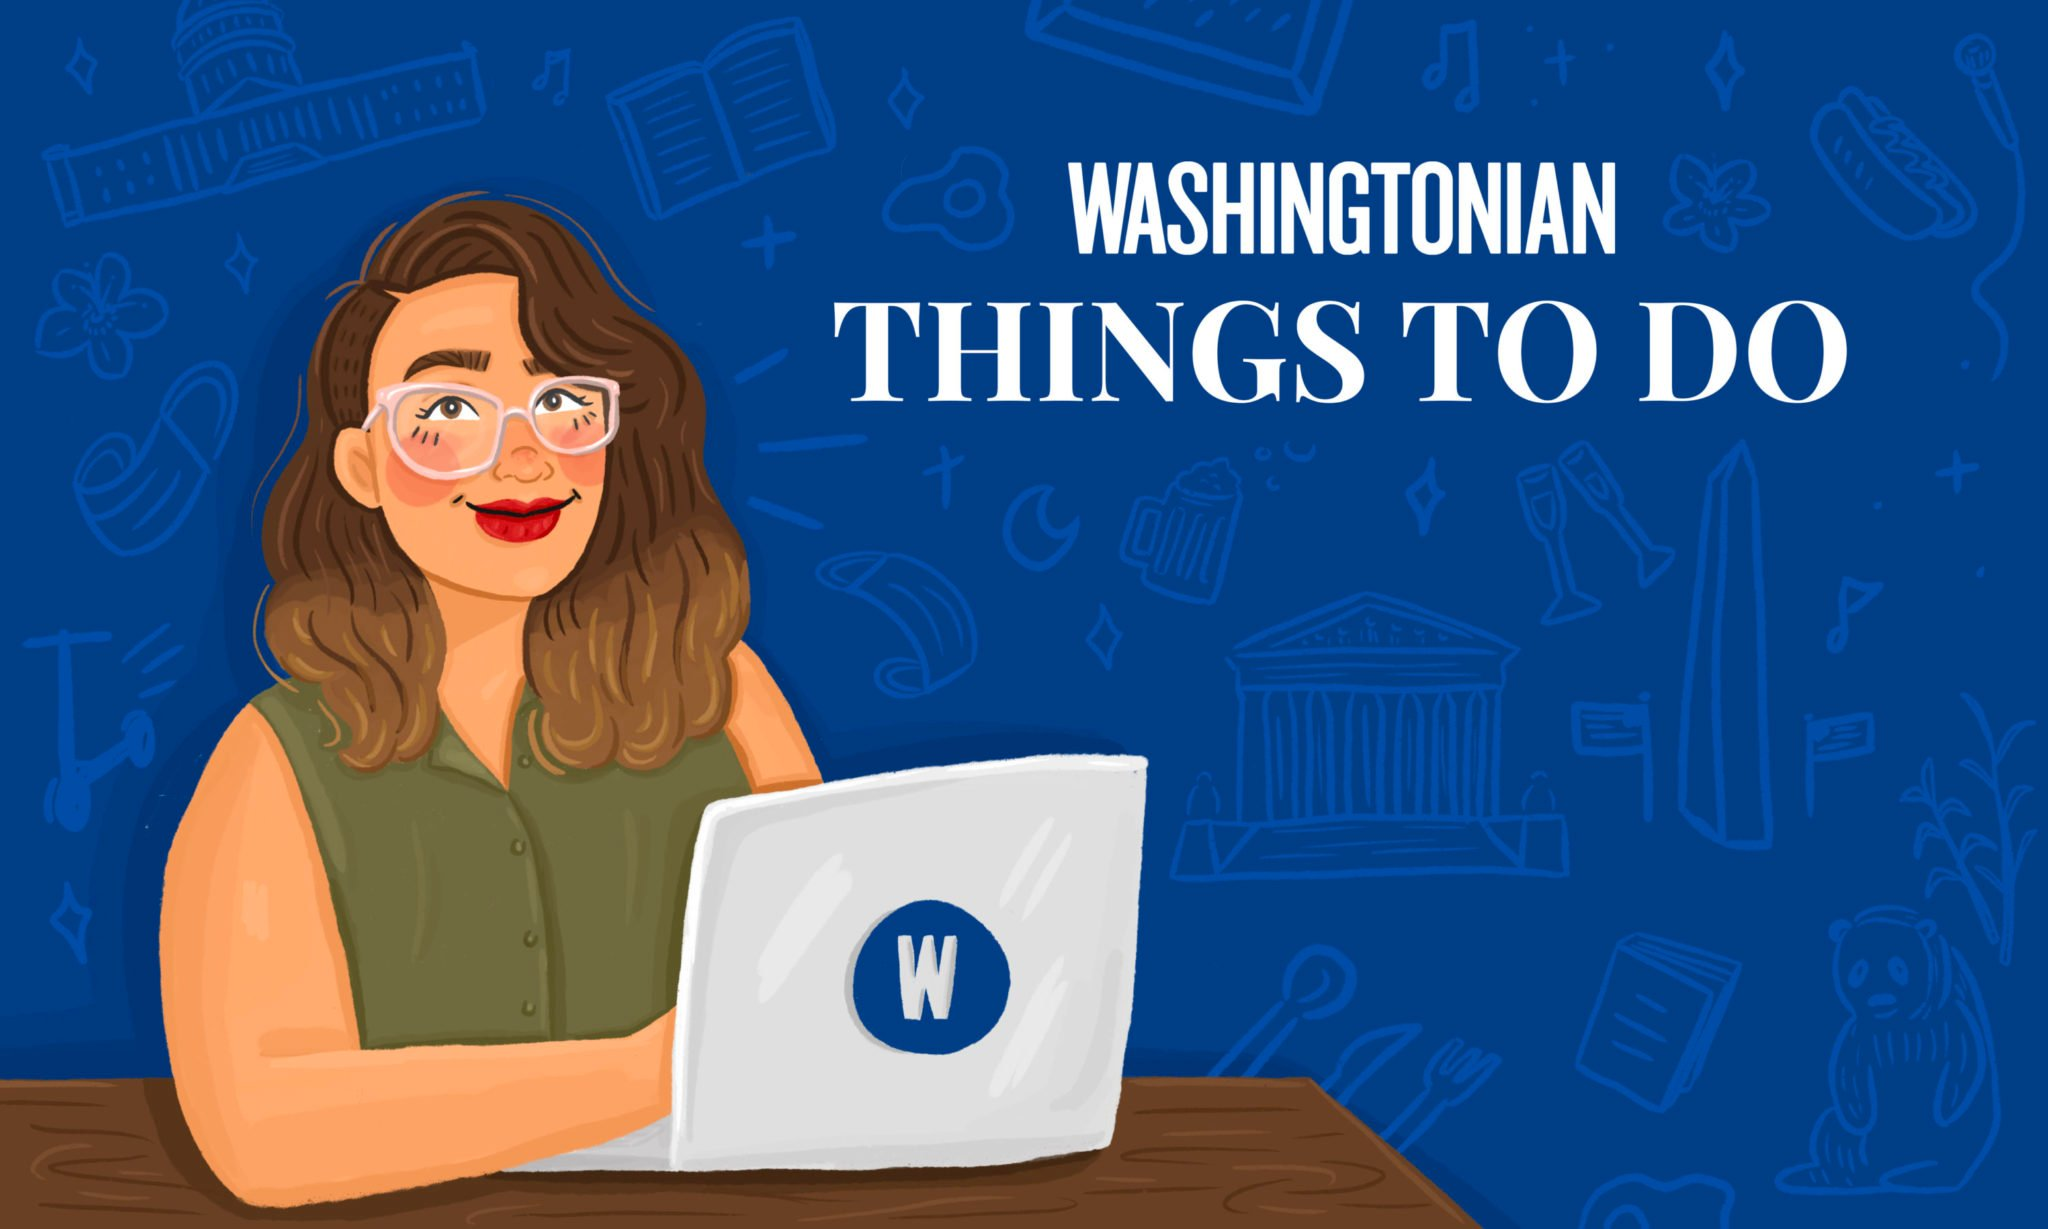 Washingtonia Best Christmas Dinner Washington Dc And Virginia 2020 An Outdoor Concert, a Kentucky Derby Party, and Labor Day Fun